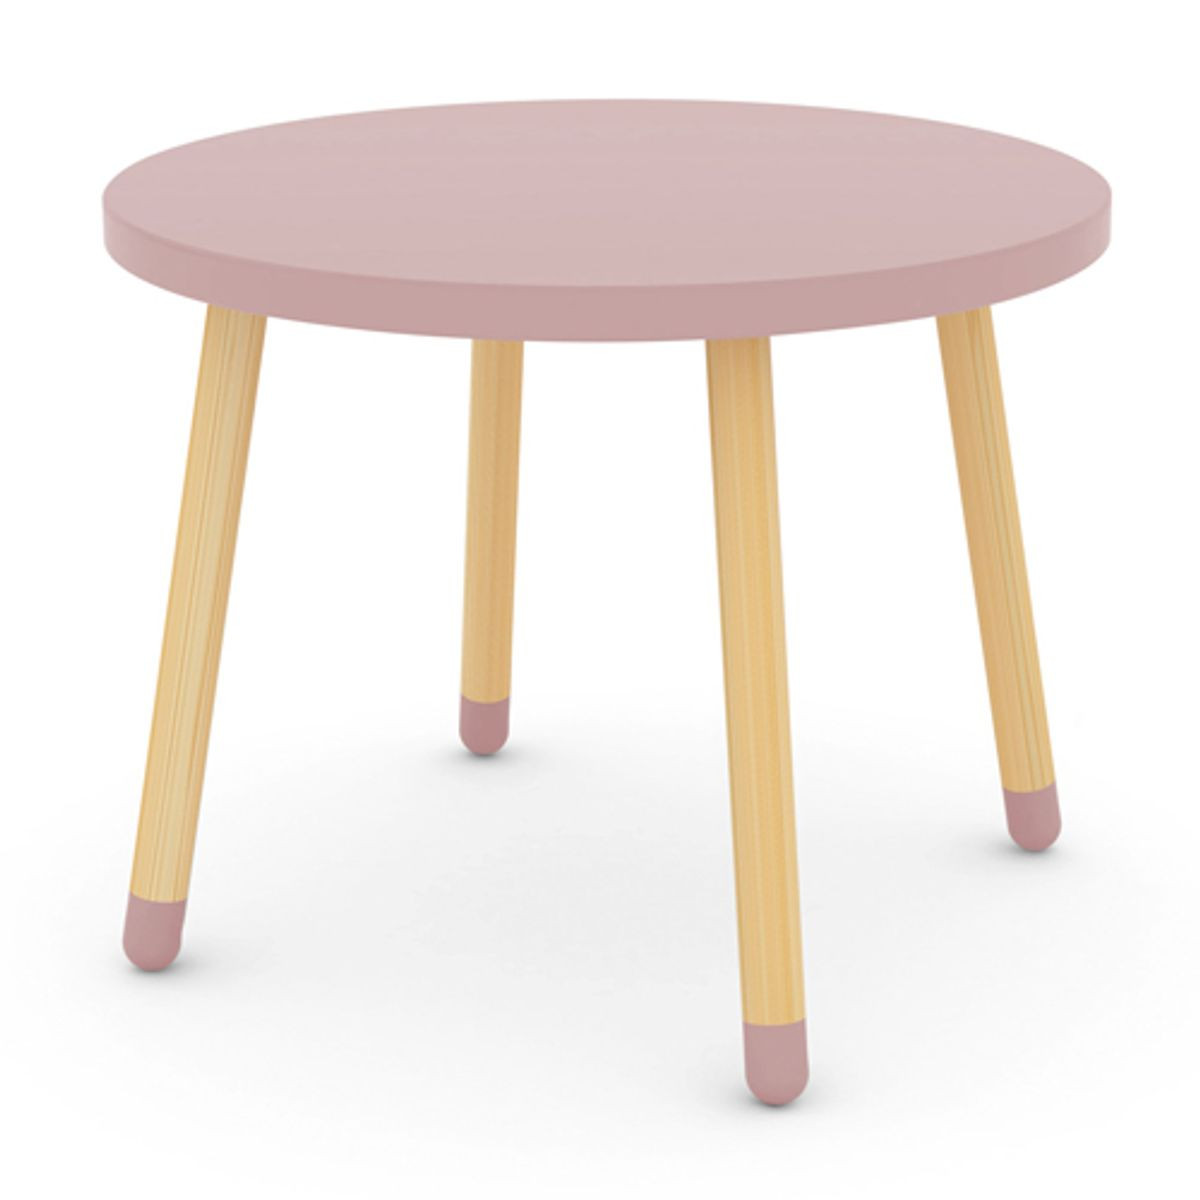 table ronde en bois pour enfant flexa play vieux rose decoclico. Black Bedroom Furniture Sets. Home Design Ideas